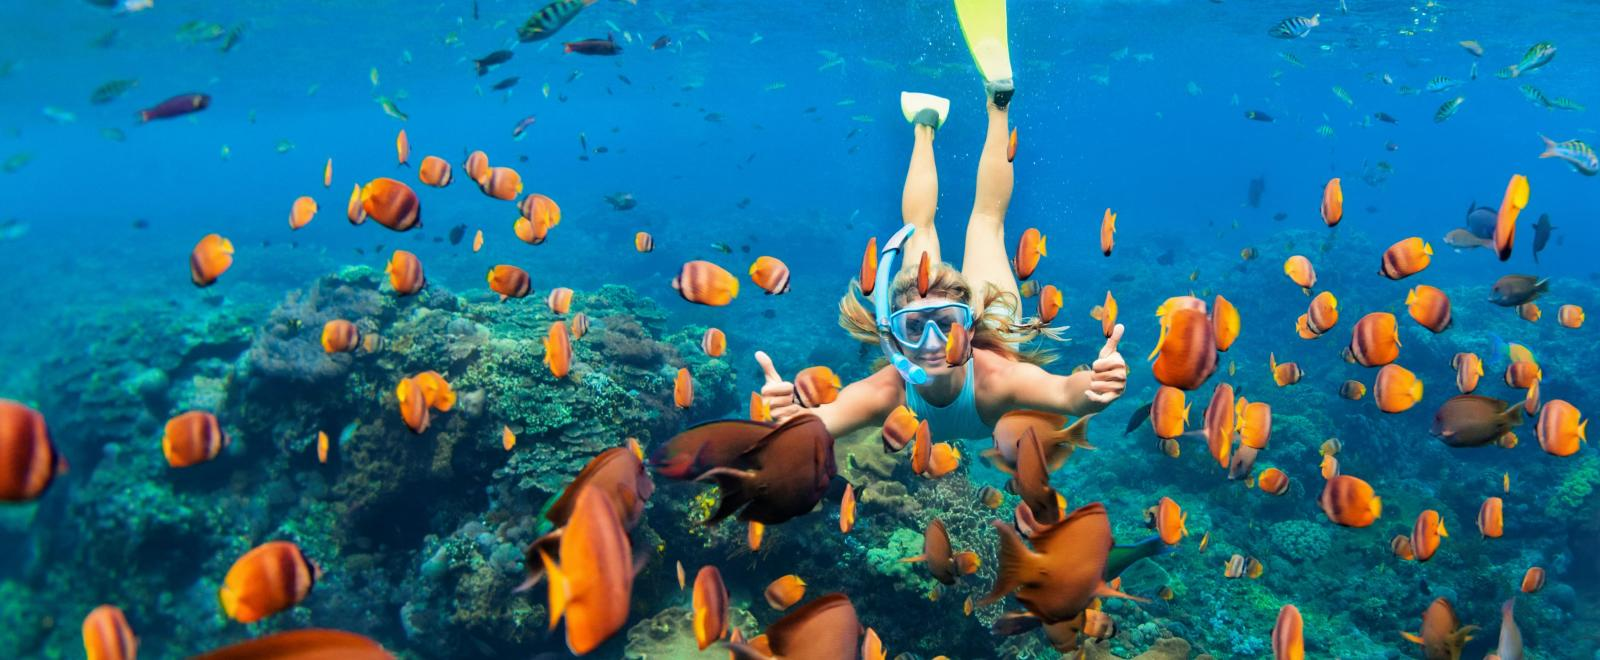 Projects Abroad traveller swims through the coral reefs of the Belize barrier Reef.